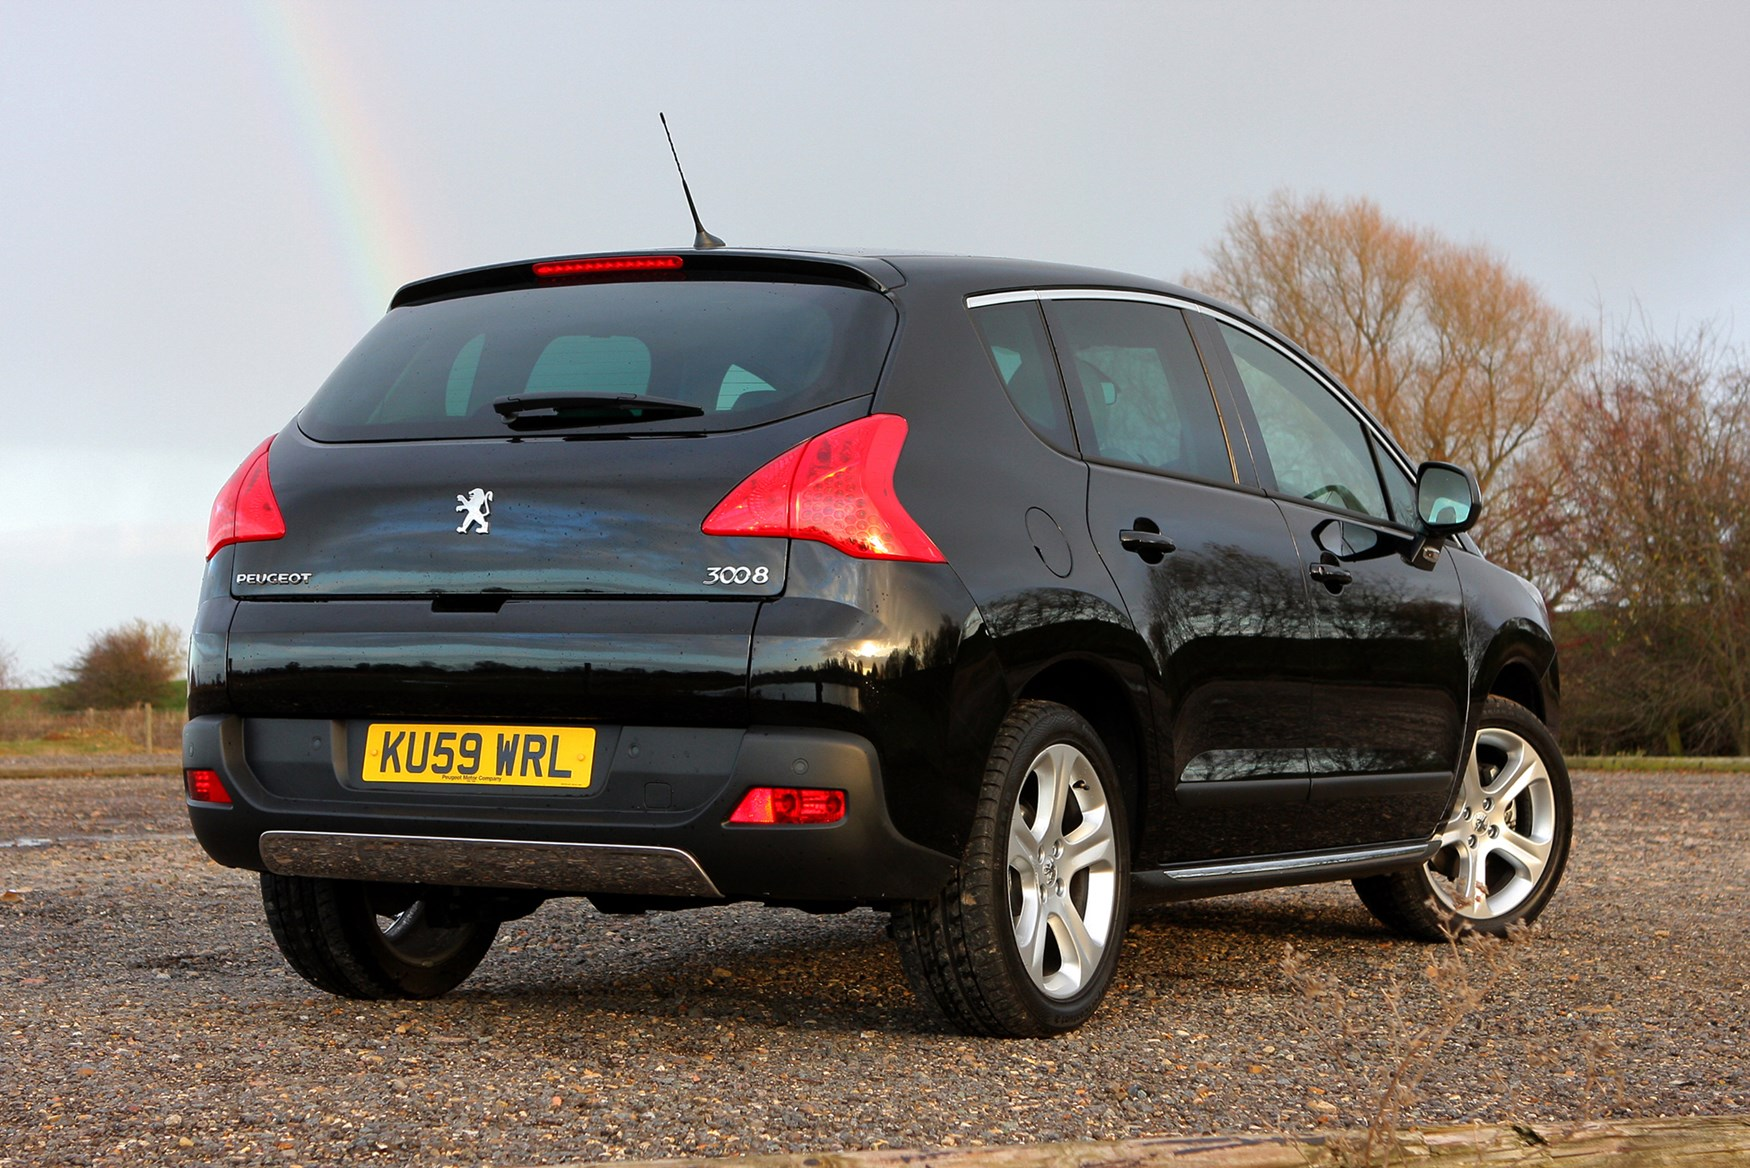 Peugeot 3008 Estate (2009 - 2016) Features, Equipment and Accessories |  Parkers